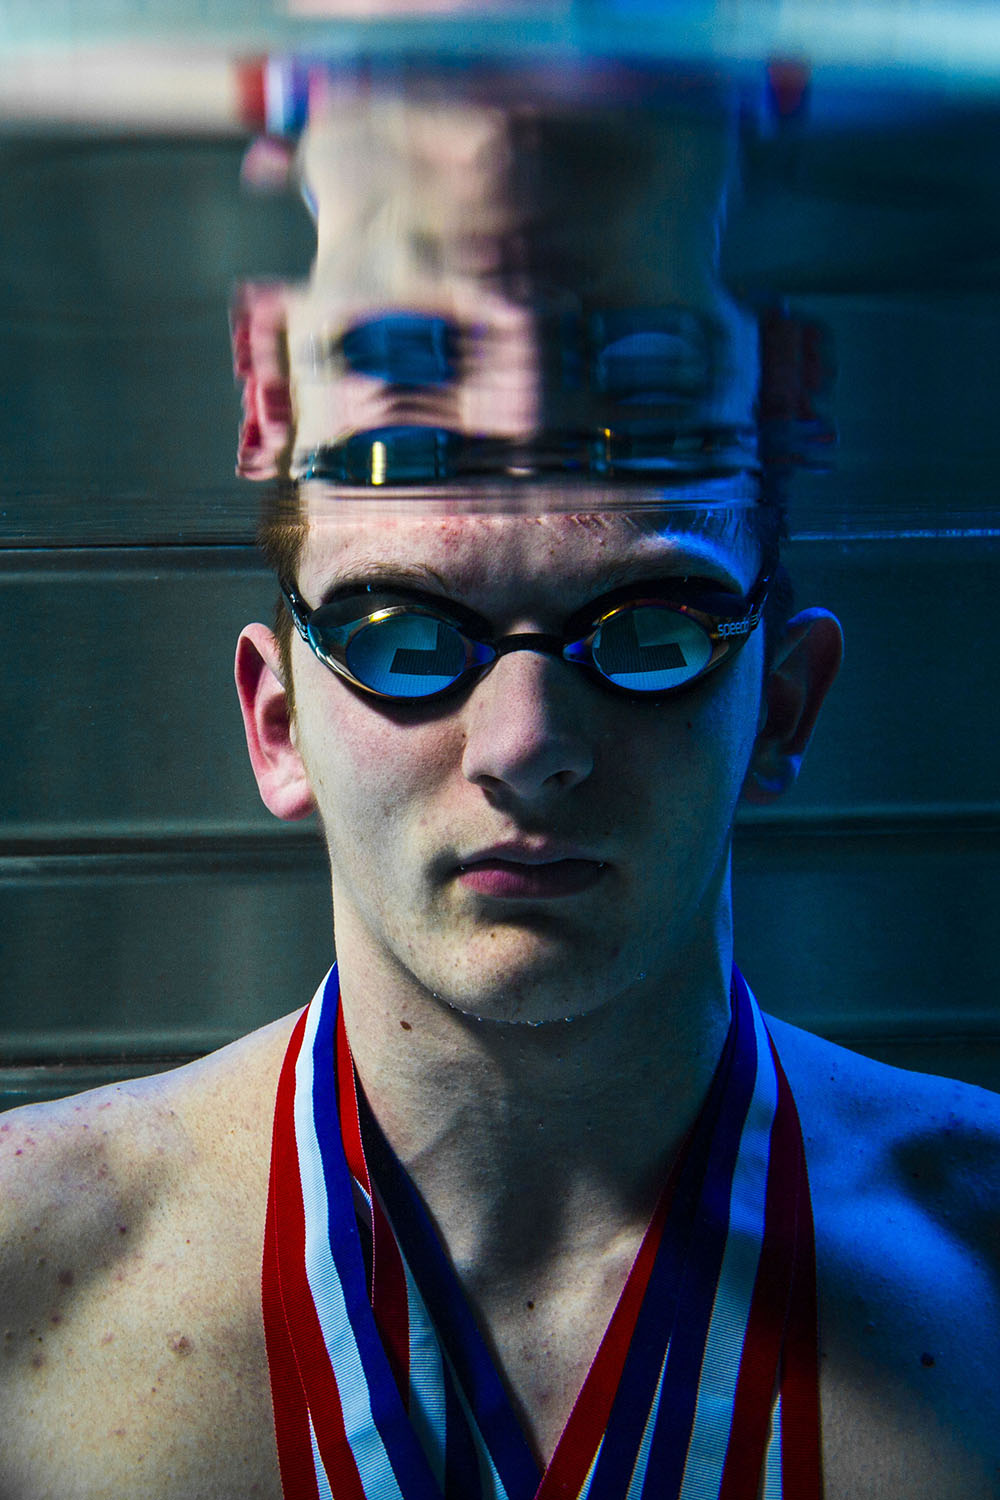 ANDY ABEYTA/JOURNAL STAR PHOTO ILLUSTRATION Swimmer of the year Colton Paulson of Notre Dame High School poses for a photo at the Bradley University pool in Peoria, Illinois, on Saturday, March 19, 2016.